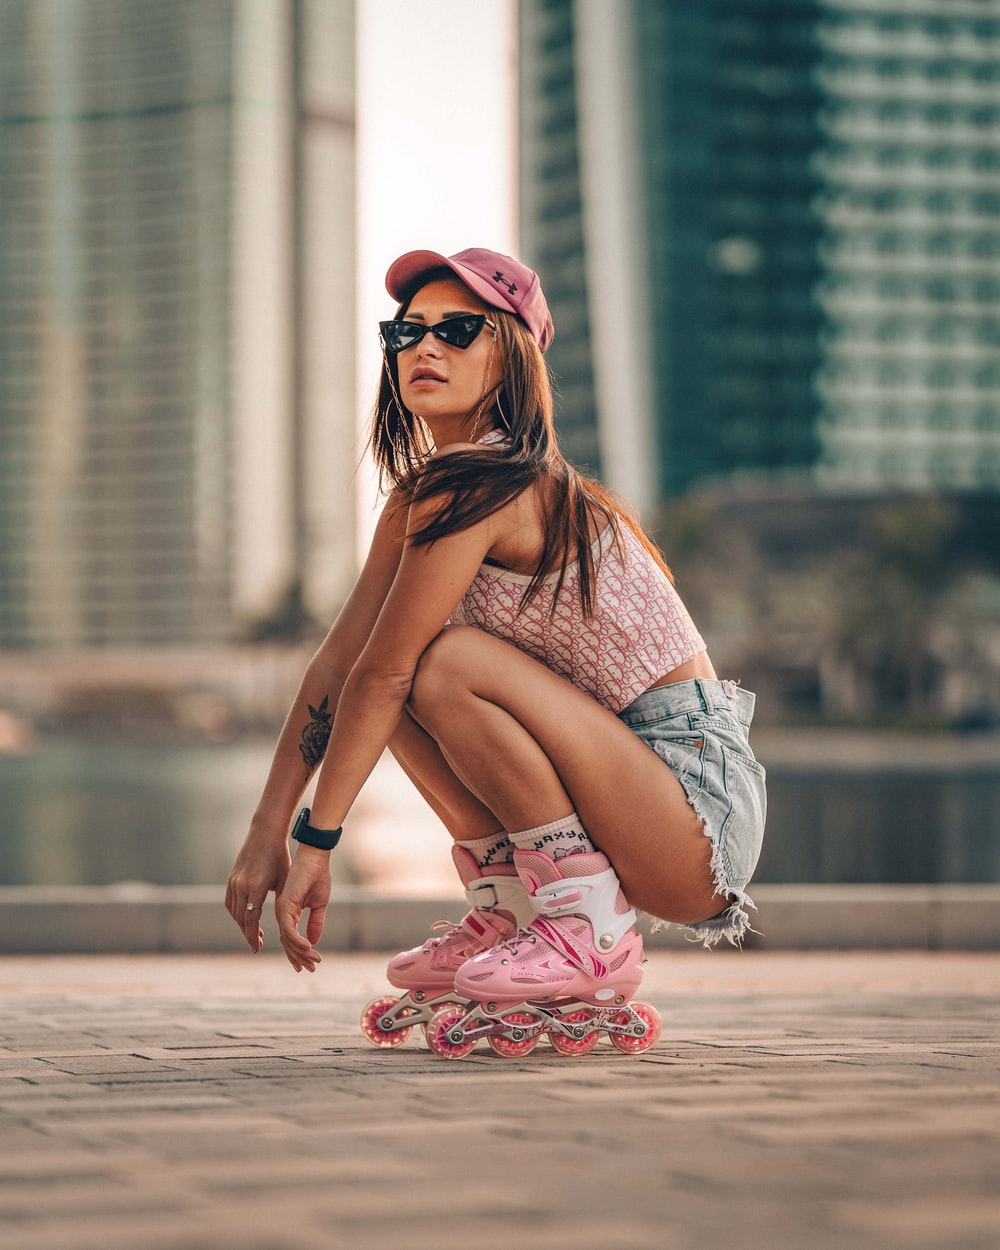 woman in blue denim shorts and red floral shoes sitting on concrete floor during daytime